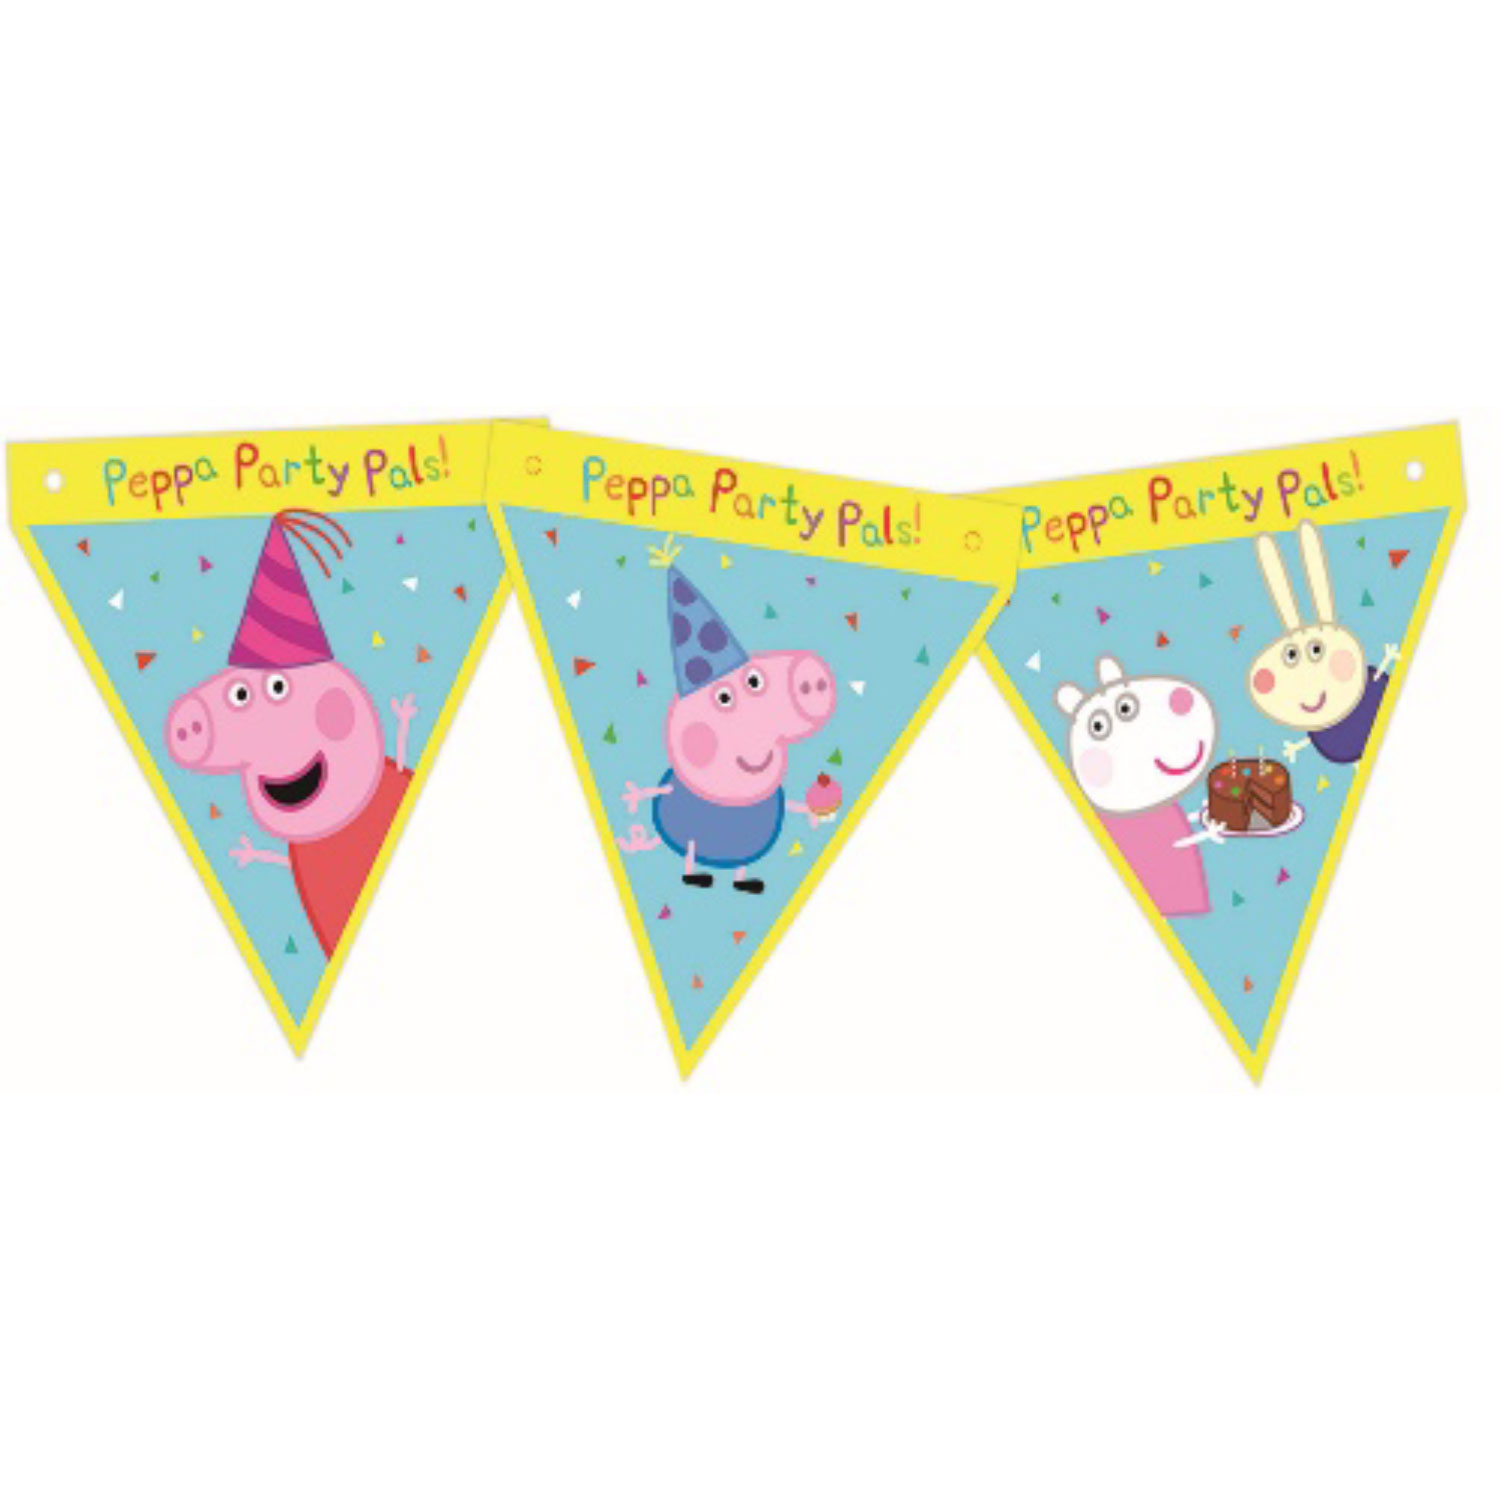 Peppa Pig Party Pals Party Banner